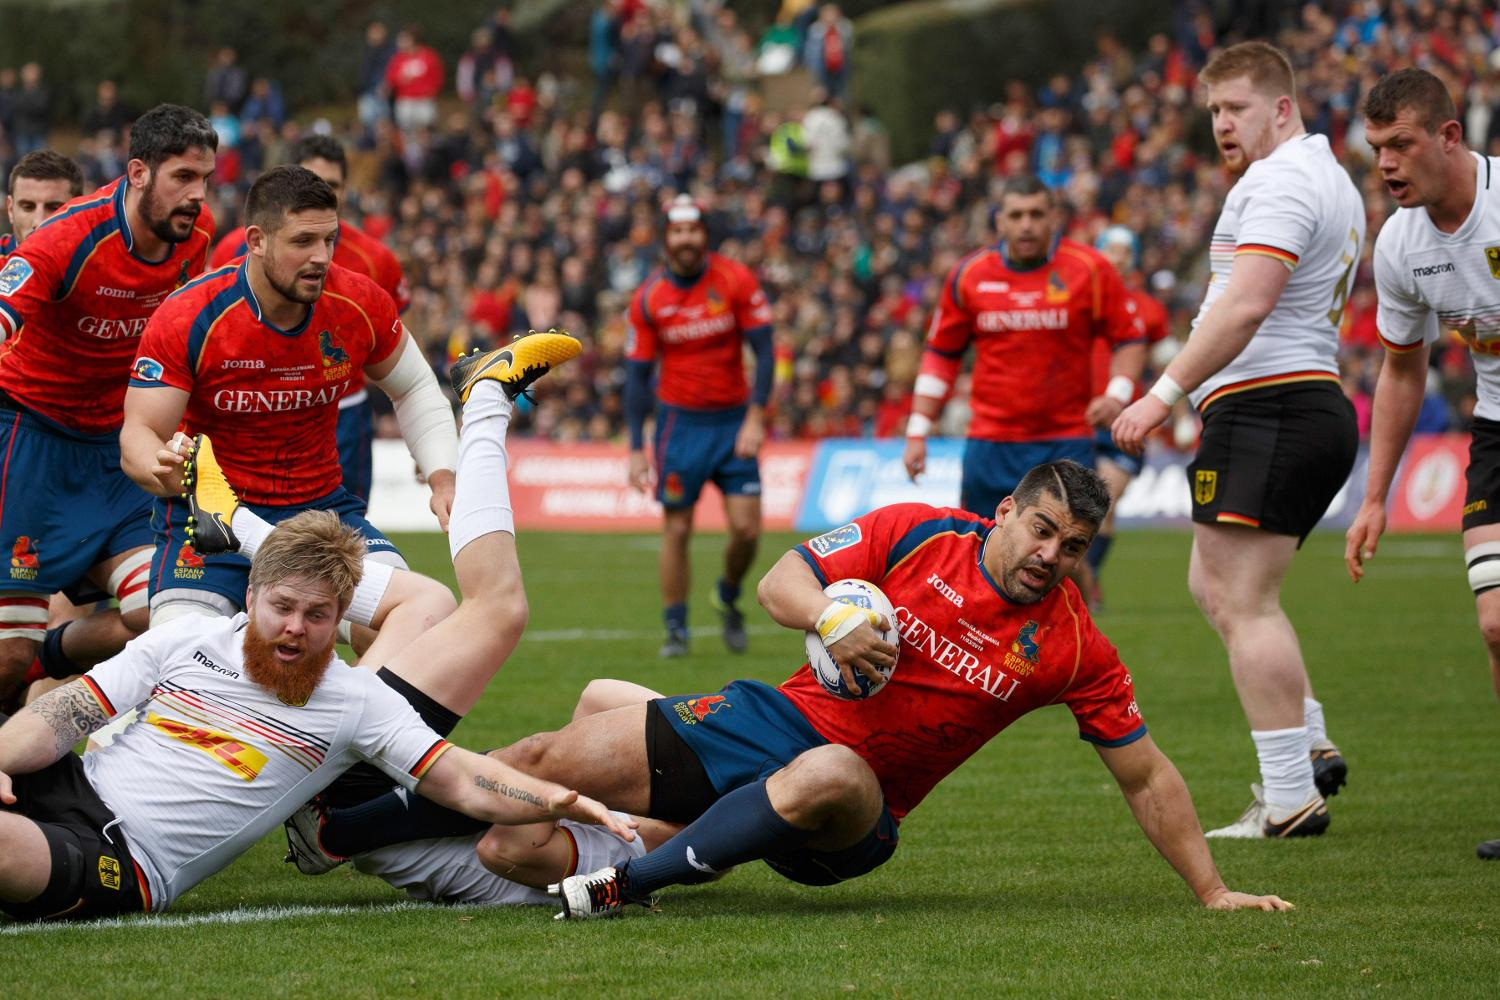 Rugby World Cup 2019 Trophy Tour: Madrid - Day 4